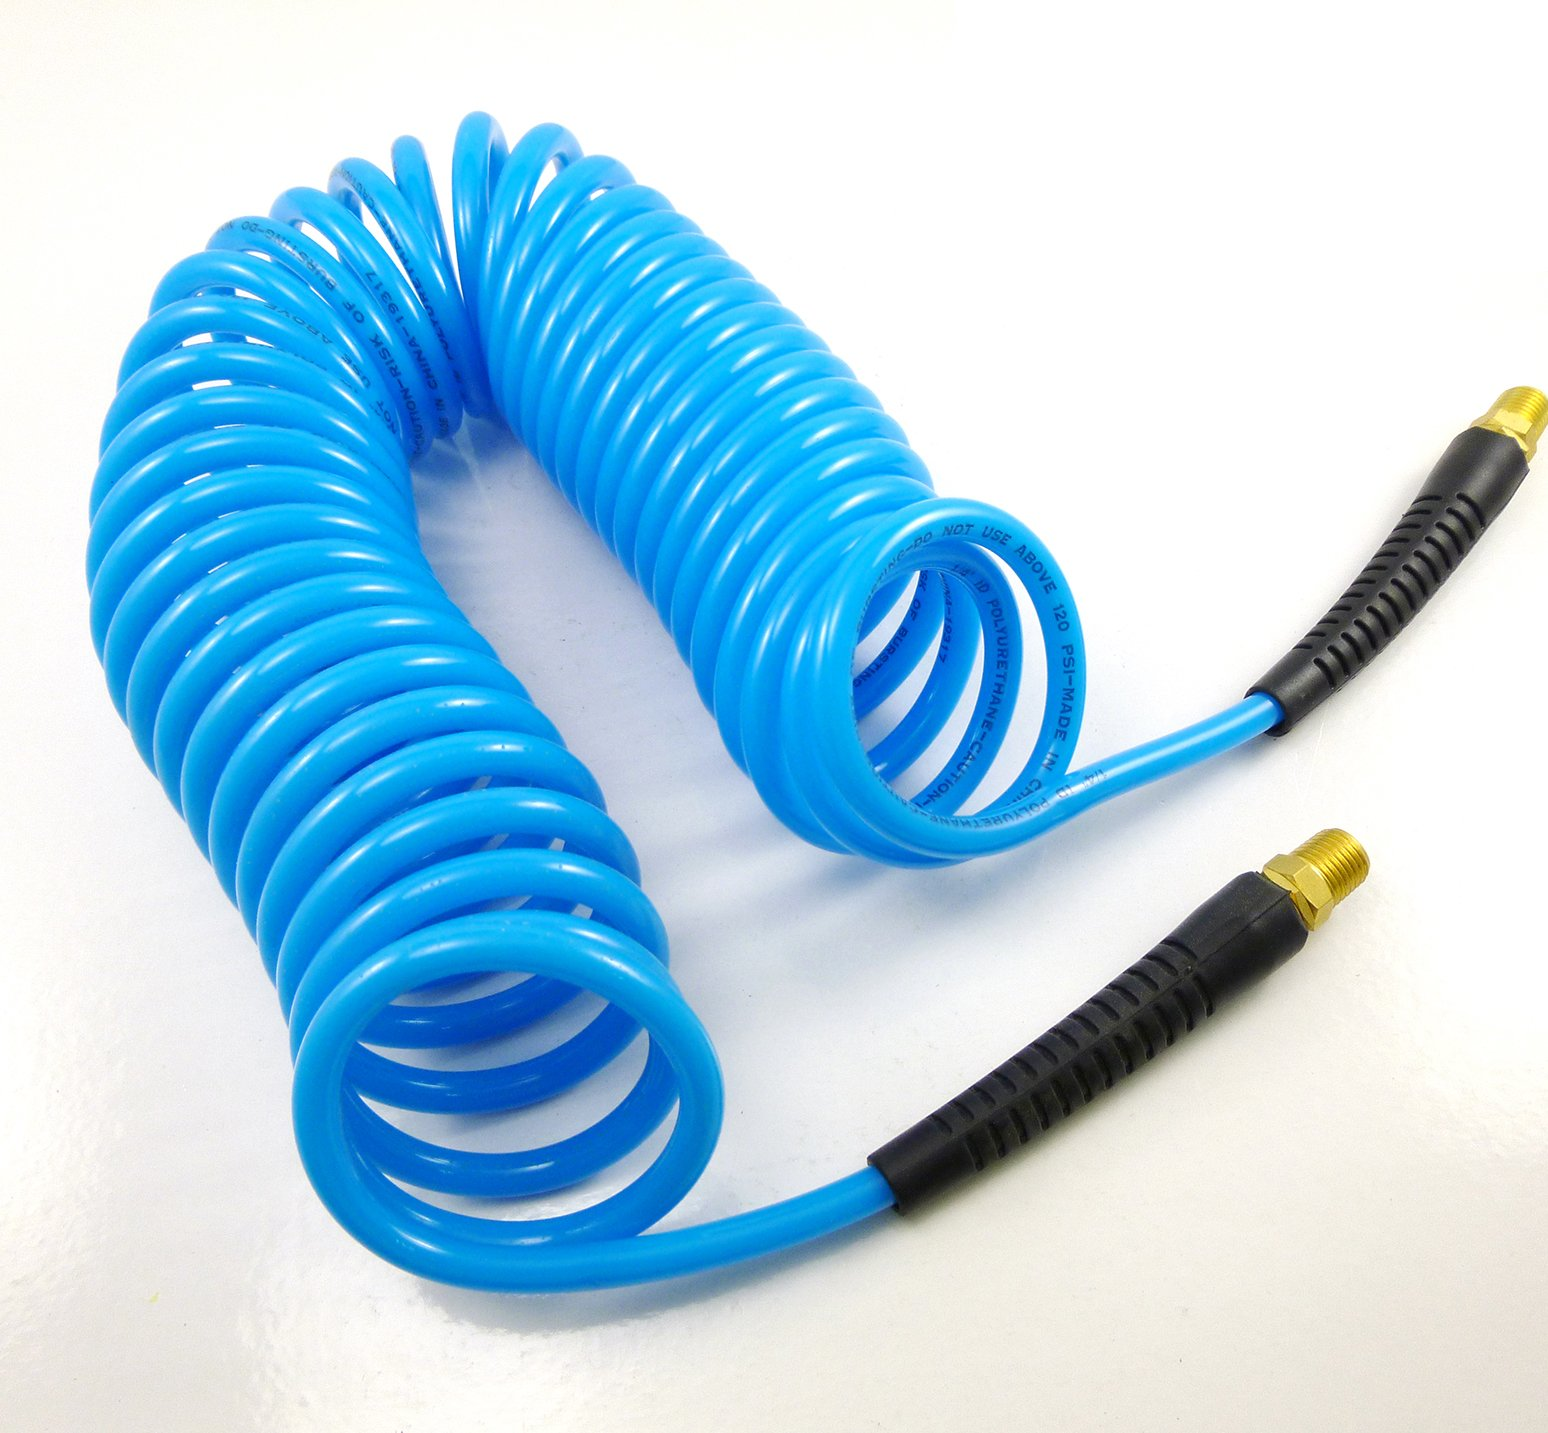 Dynamic Power 120 PSI Polyurethane Recoil Air Hose 1/4'' x 25' With 1/4'' MNPT Swivel Ends And Bend Restrictor Fittings (Blue)